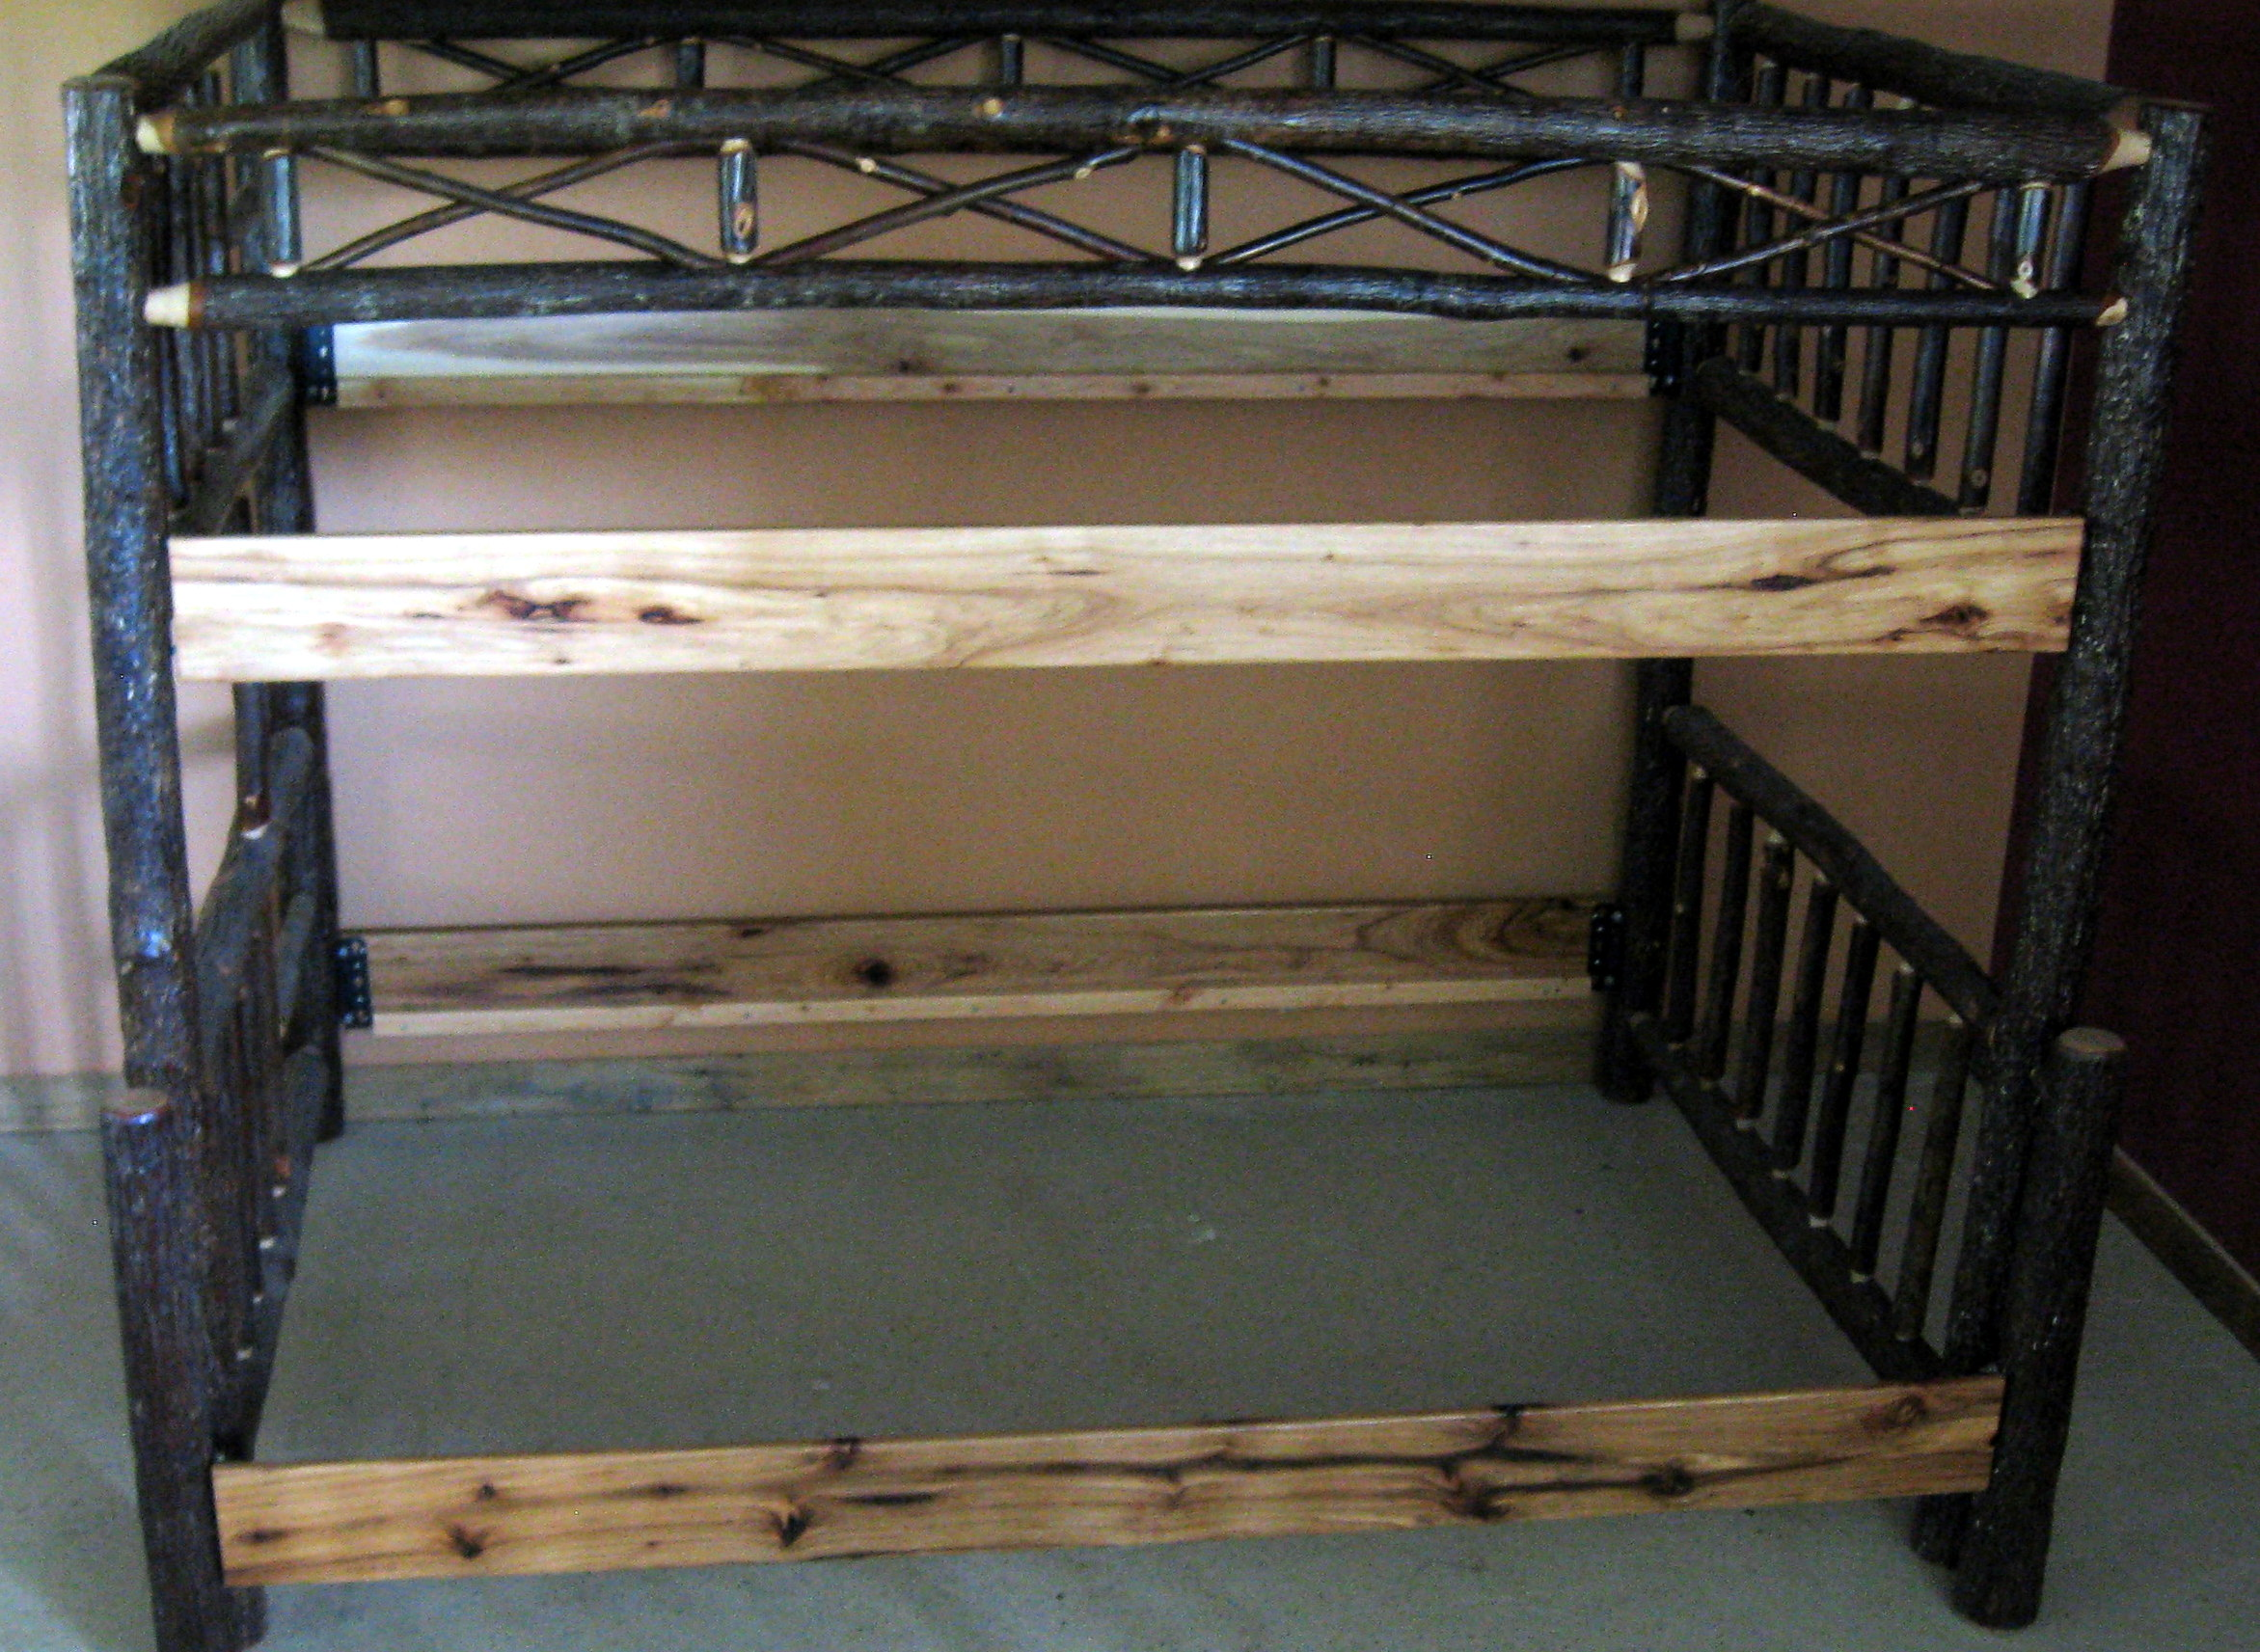 hickory-log-bunk-3.jpg